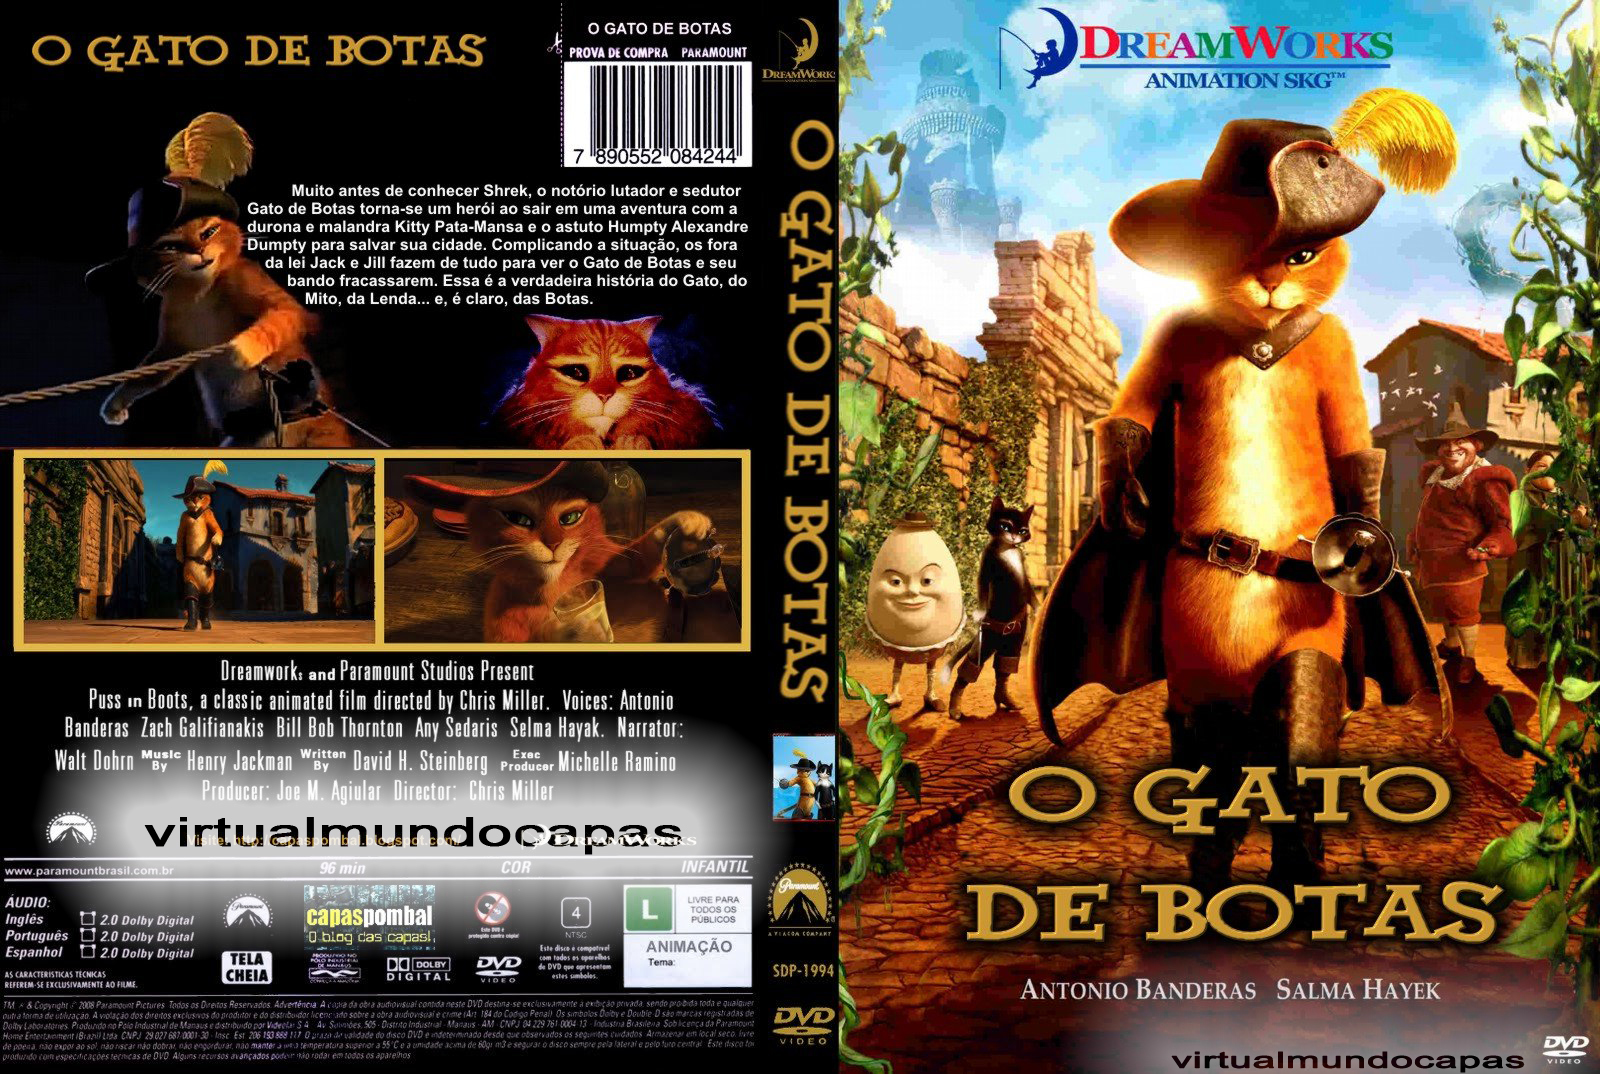 CAPA-DO FILME O GATO DE BOTAS-2011 | VIRTUAL MUNDO CAPAS